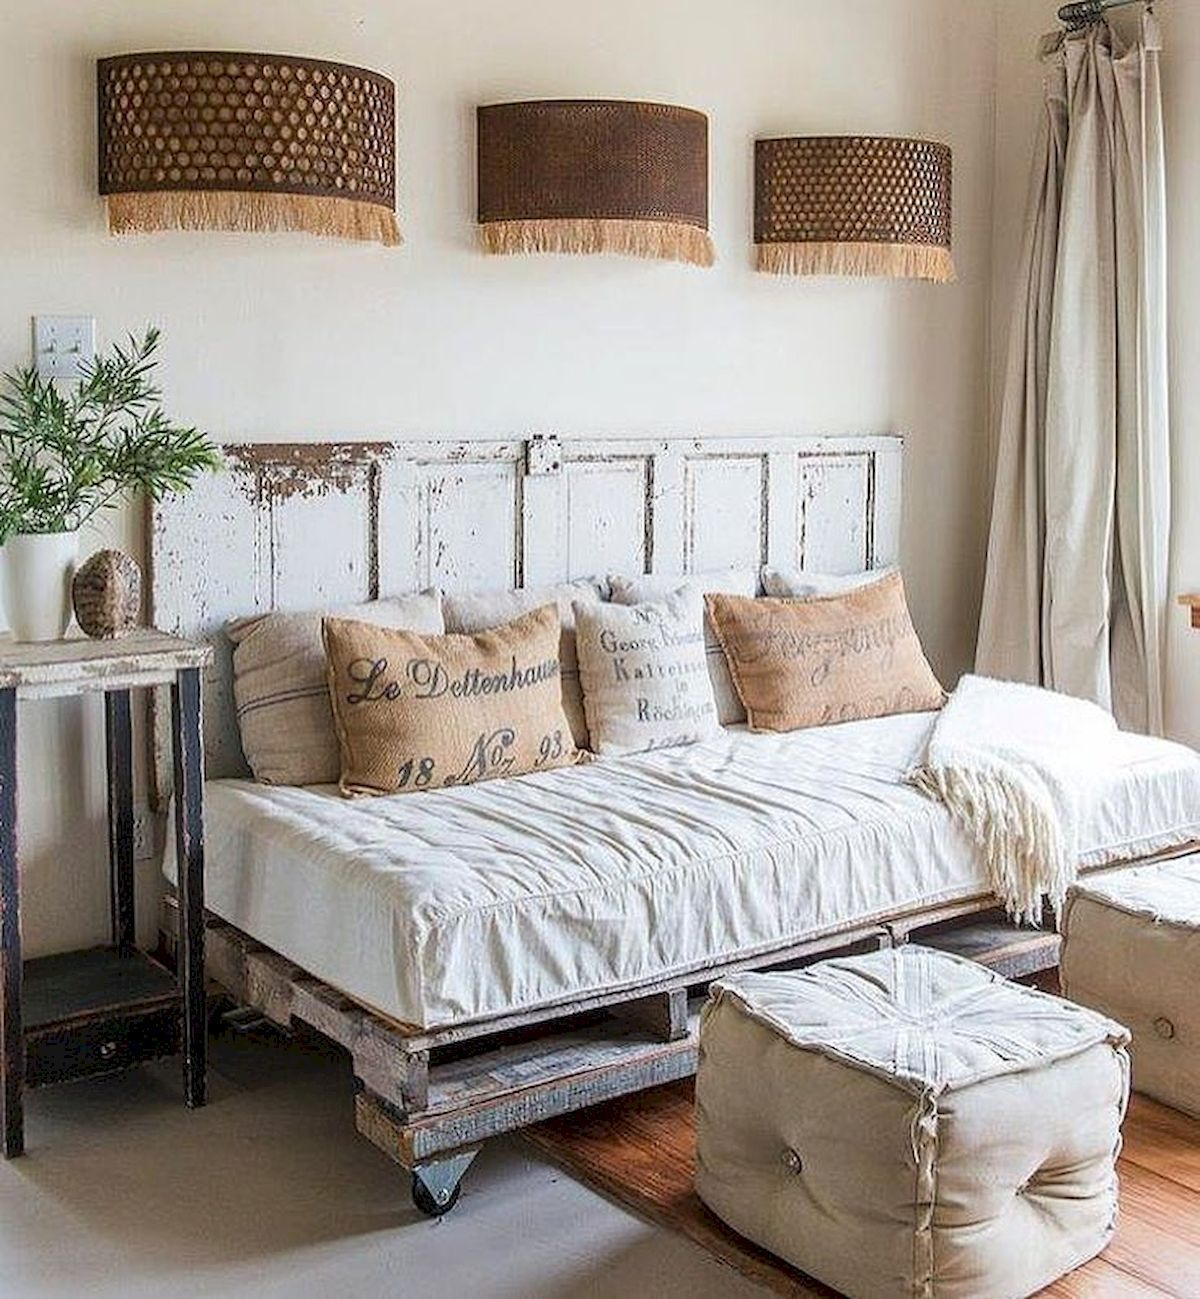 30 creative wooden pallets bed projects ideas (14 images